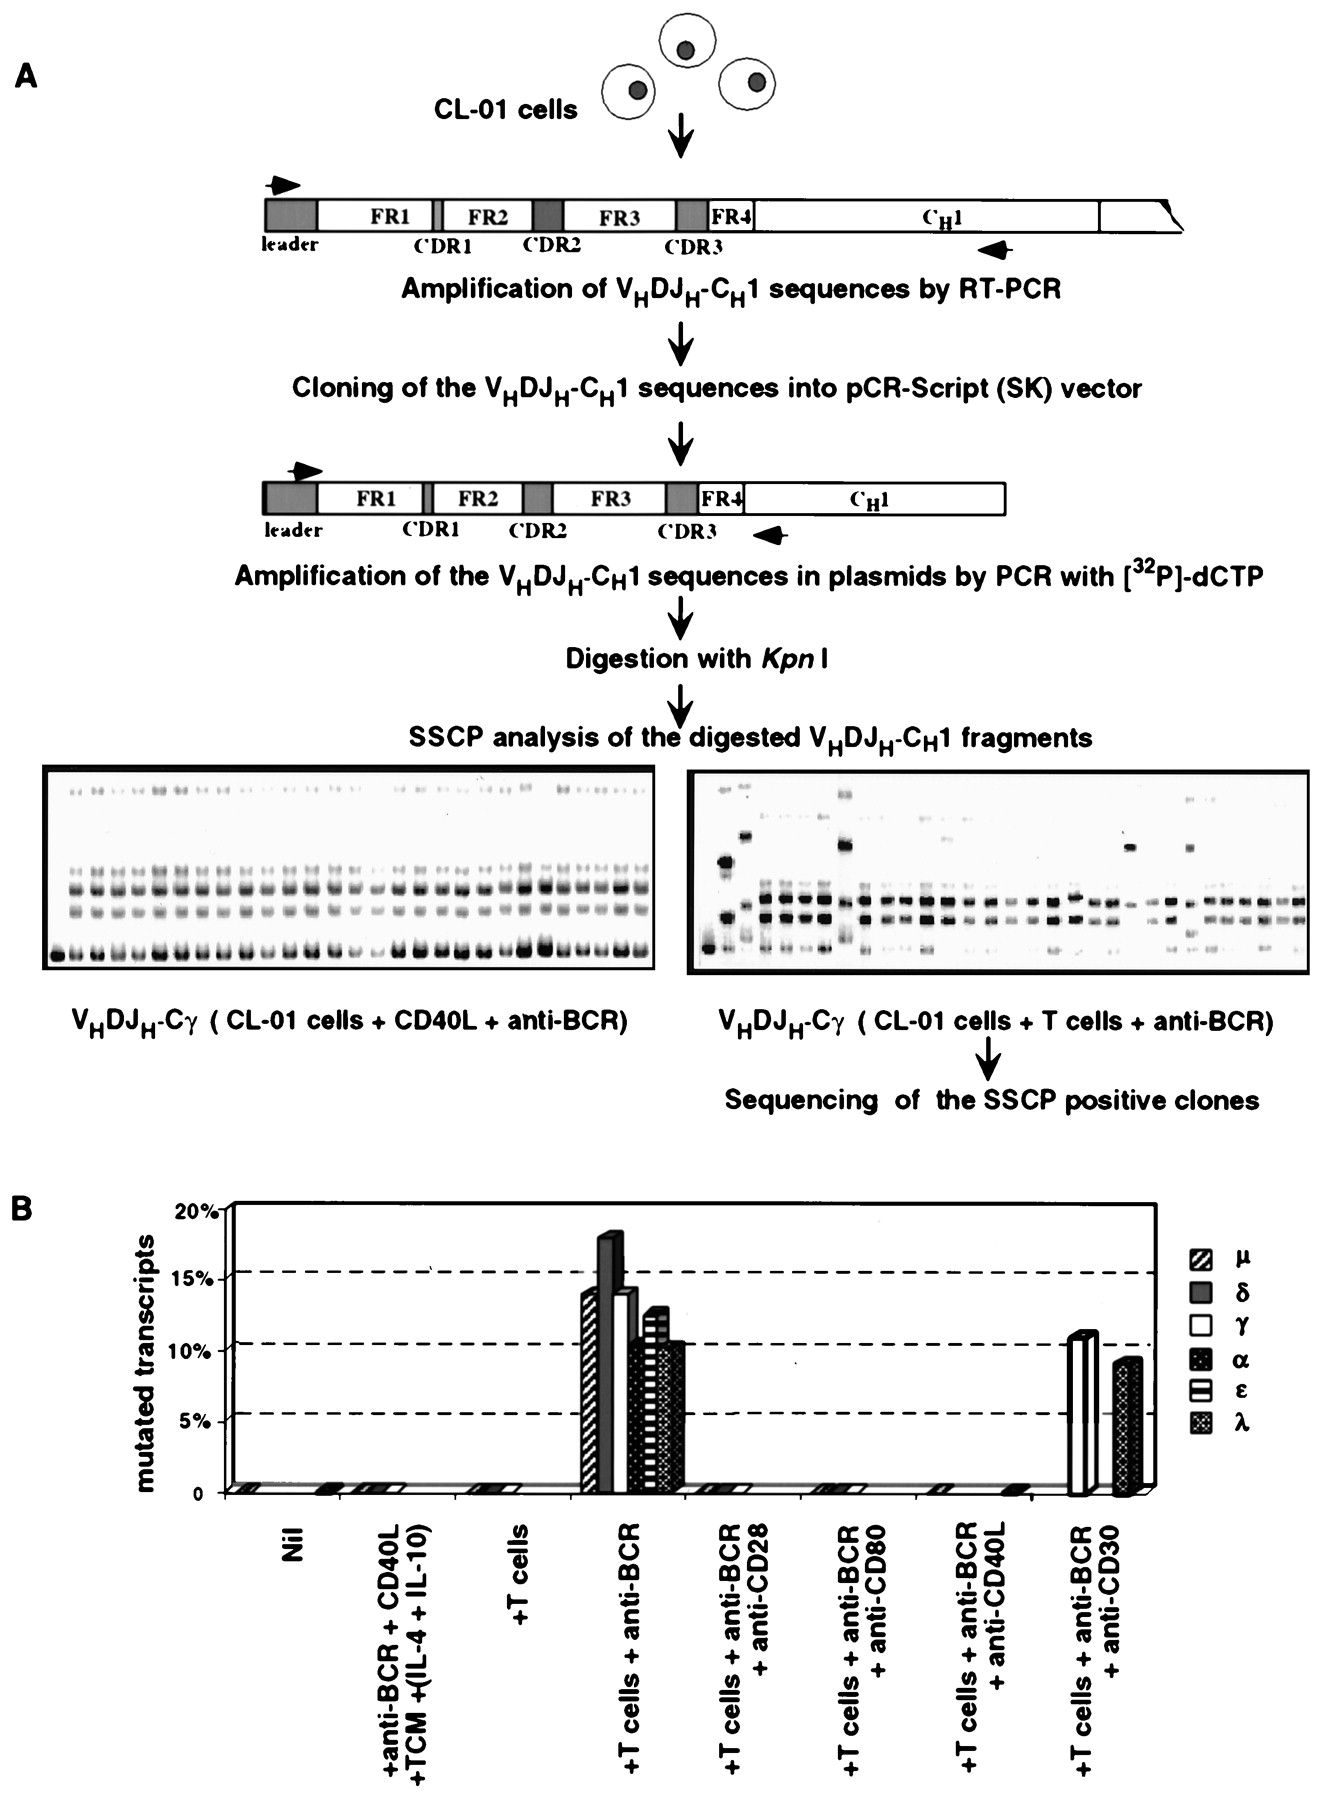 induction of ig somatic hypermutation and class switching in a human